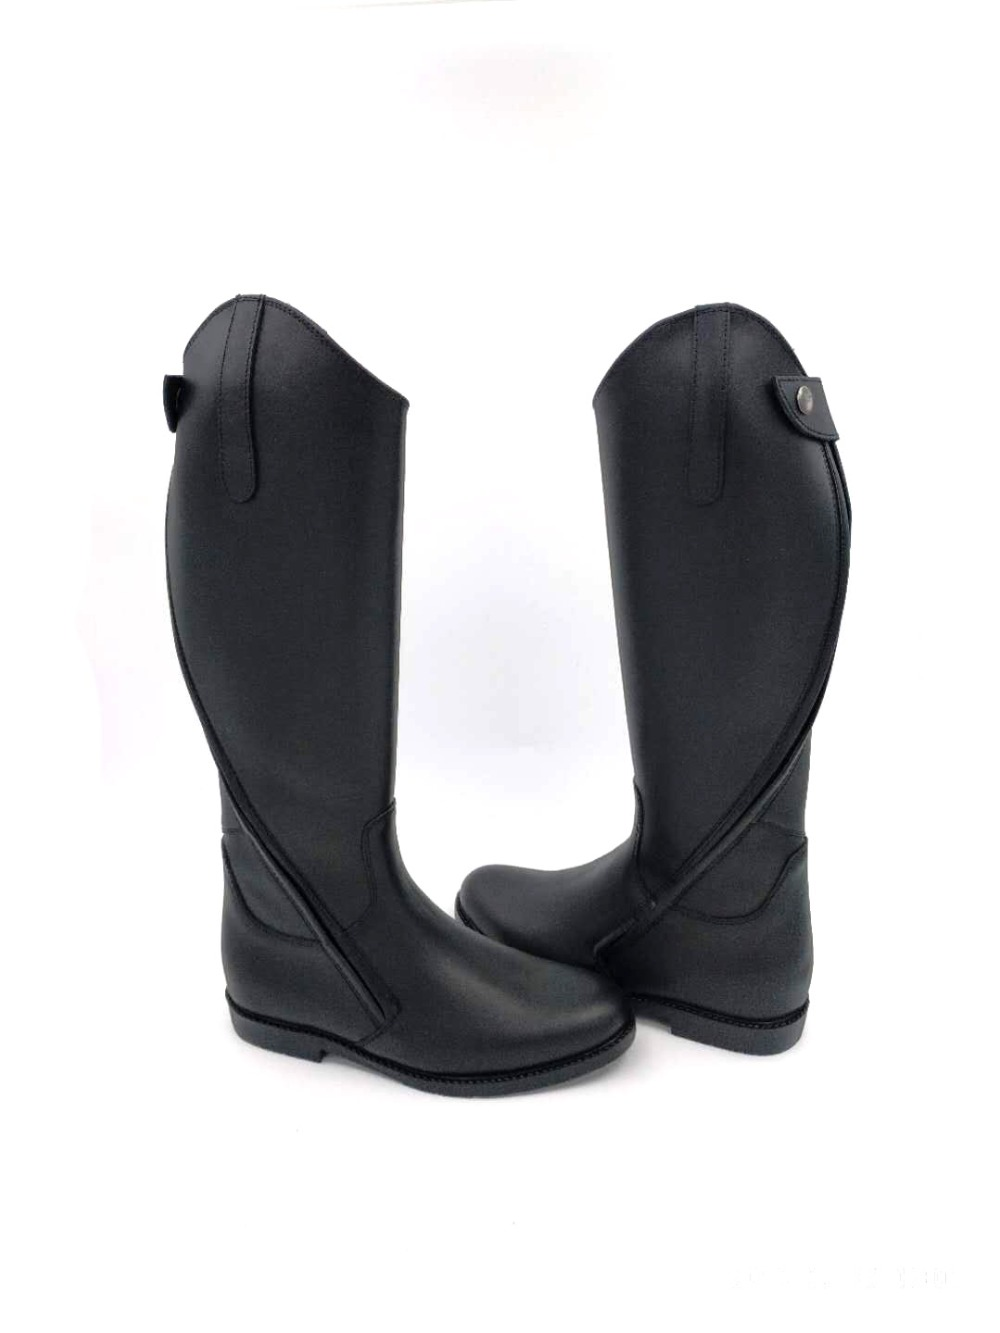 Aoud Saddley Horse Riding Boots Full Leather Dressage Boots Equestrian Boots  Parksy Zipper Shoes Horse Racing Equipment Halter